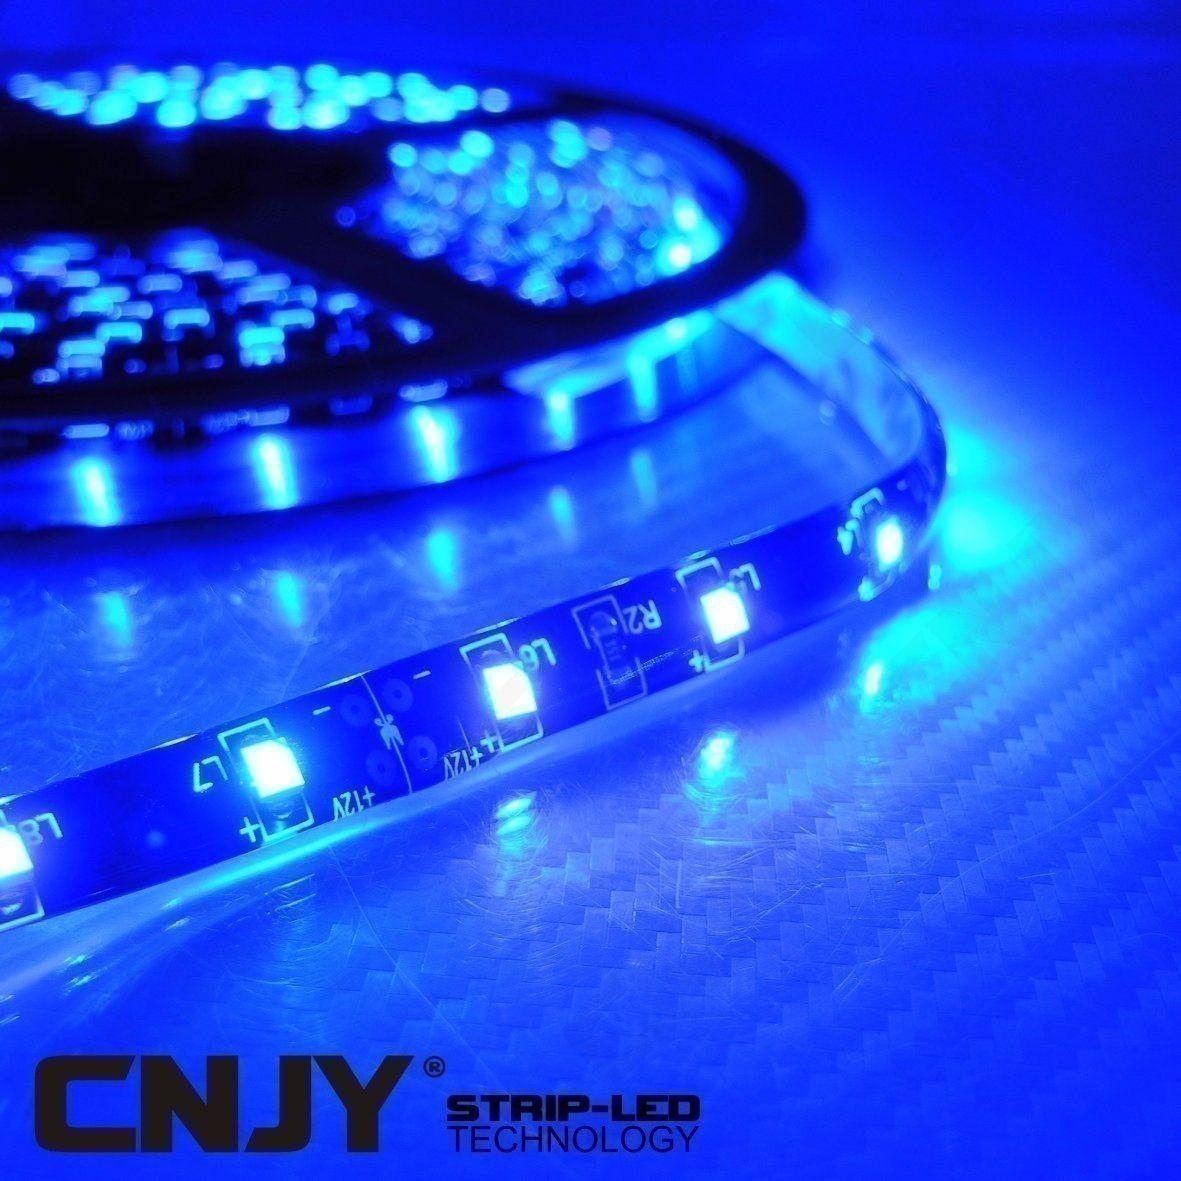 Eclairage Led Etanche Pour Aquarium 1 Ruban De Led Smd 3528 Bleu Ip65 12v 60led Mètre Strip